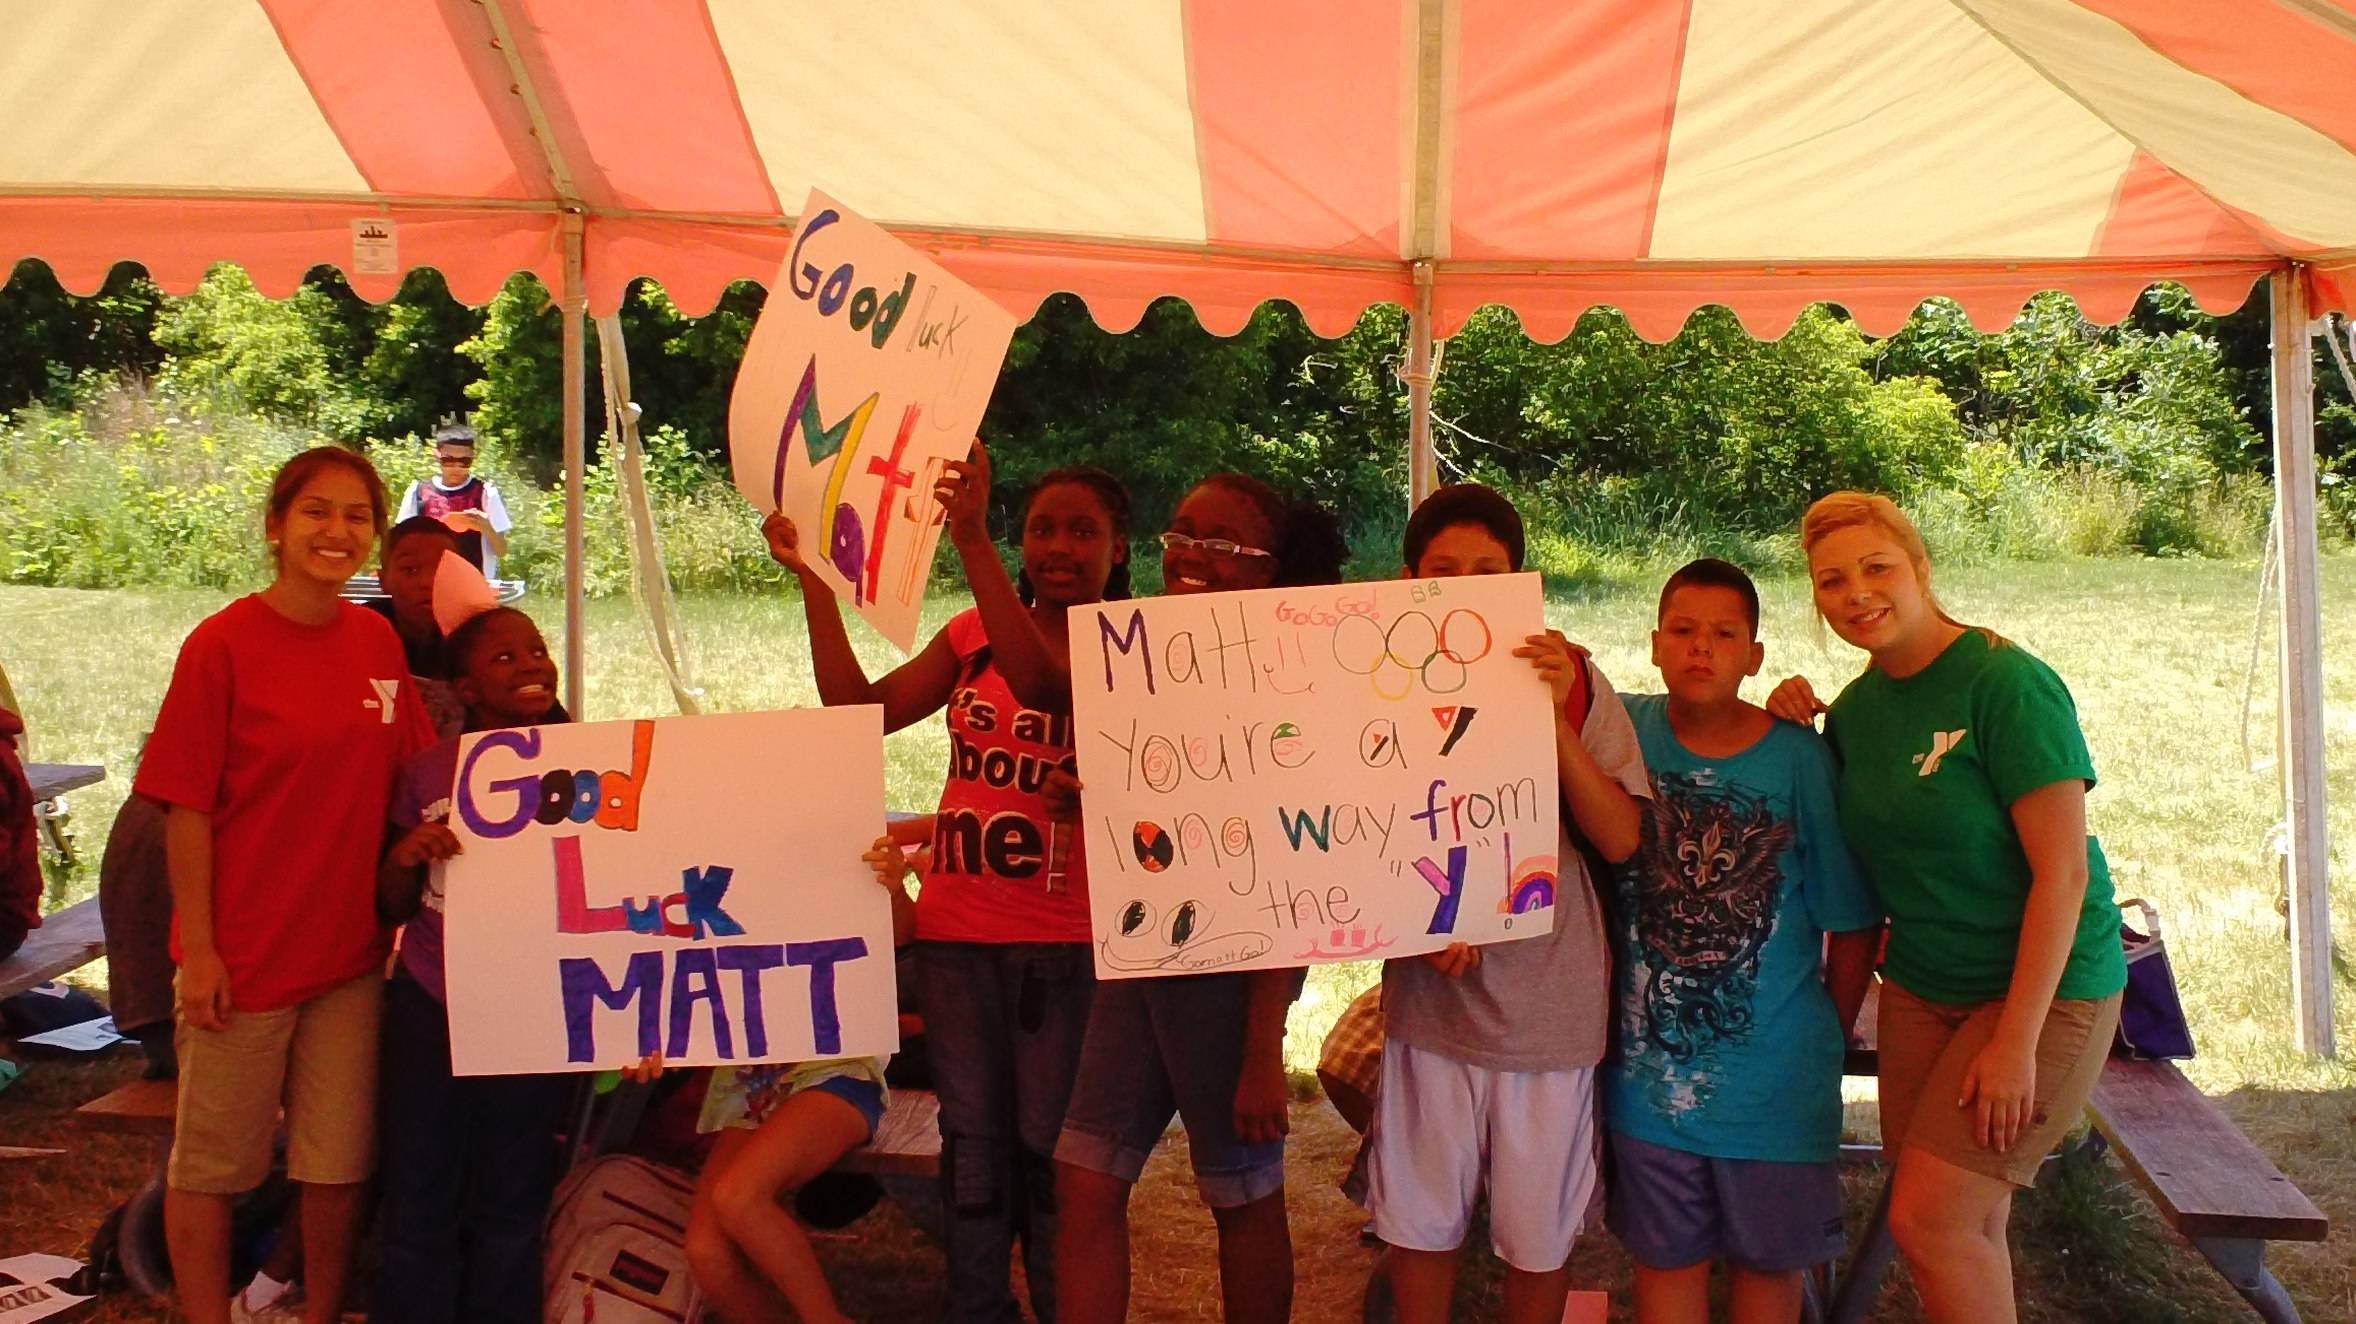 Northern Lake YMCA Summer Day Camp participants cheer on Matt Grevers in the Olympic trials.  Grevers' first swim team was the Northern Lake YMCA Seahorses in Waukegan.  Pictured (from left) are Counselor Liliana Buenrostro, Phinas Alexander, Shaqell Lymon, Arielle Cash, Kayla Gibson, Artemio Galindo, Julian Rojel and counselor Janelle Hunt.